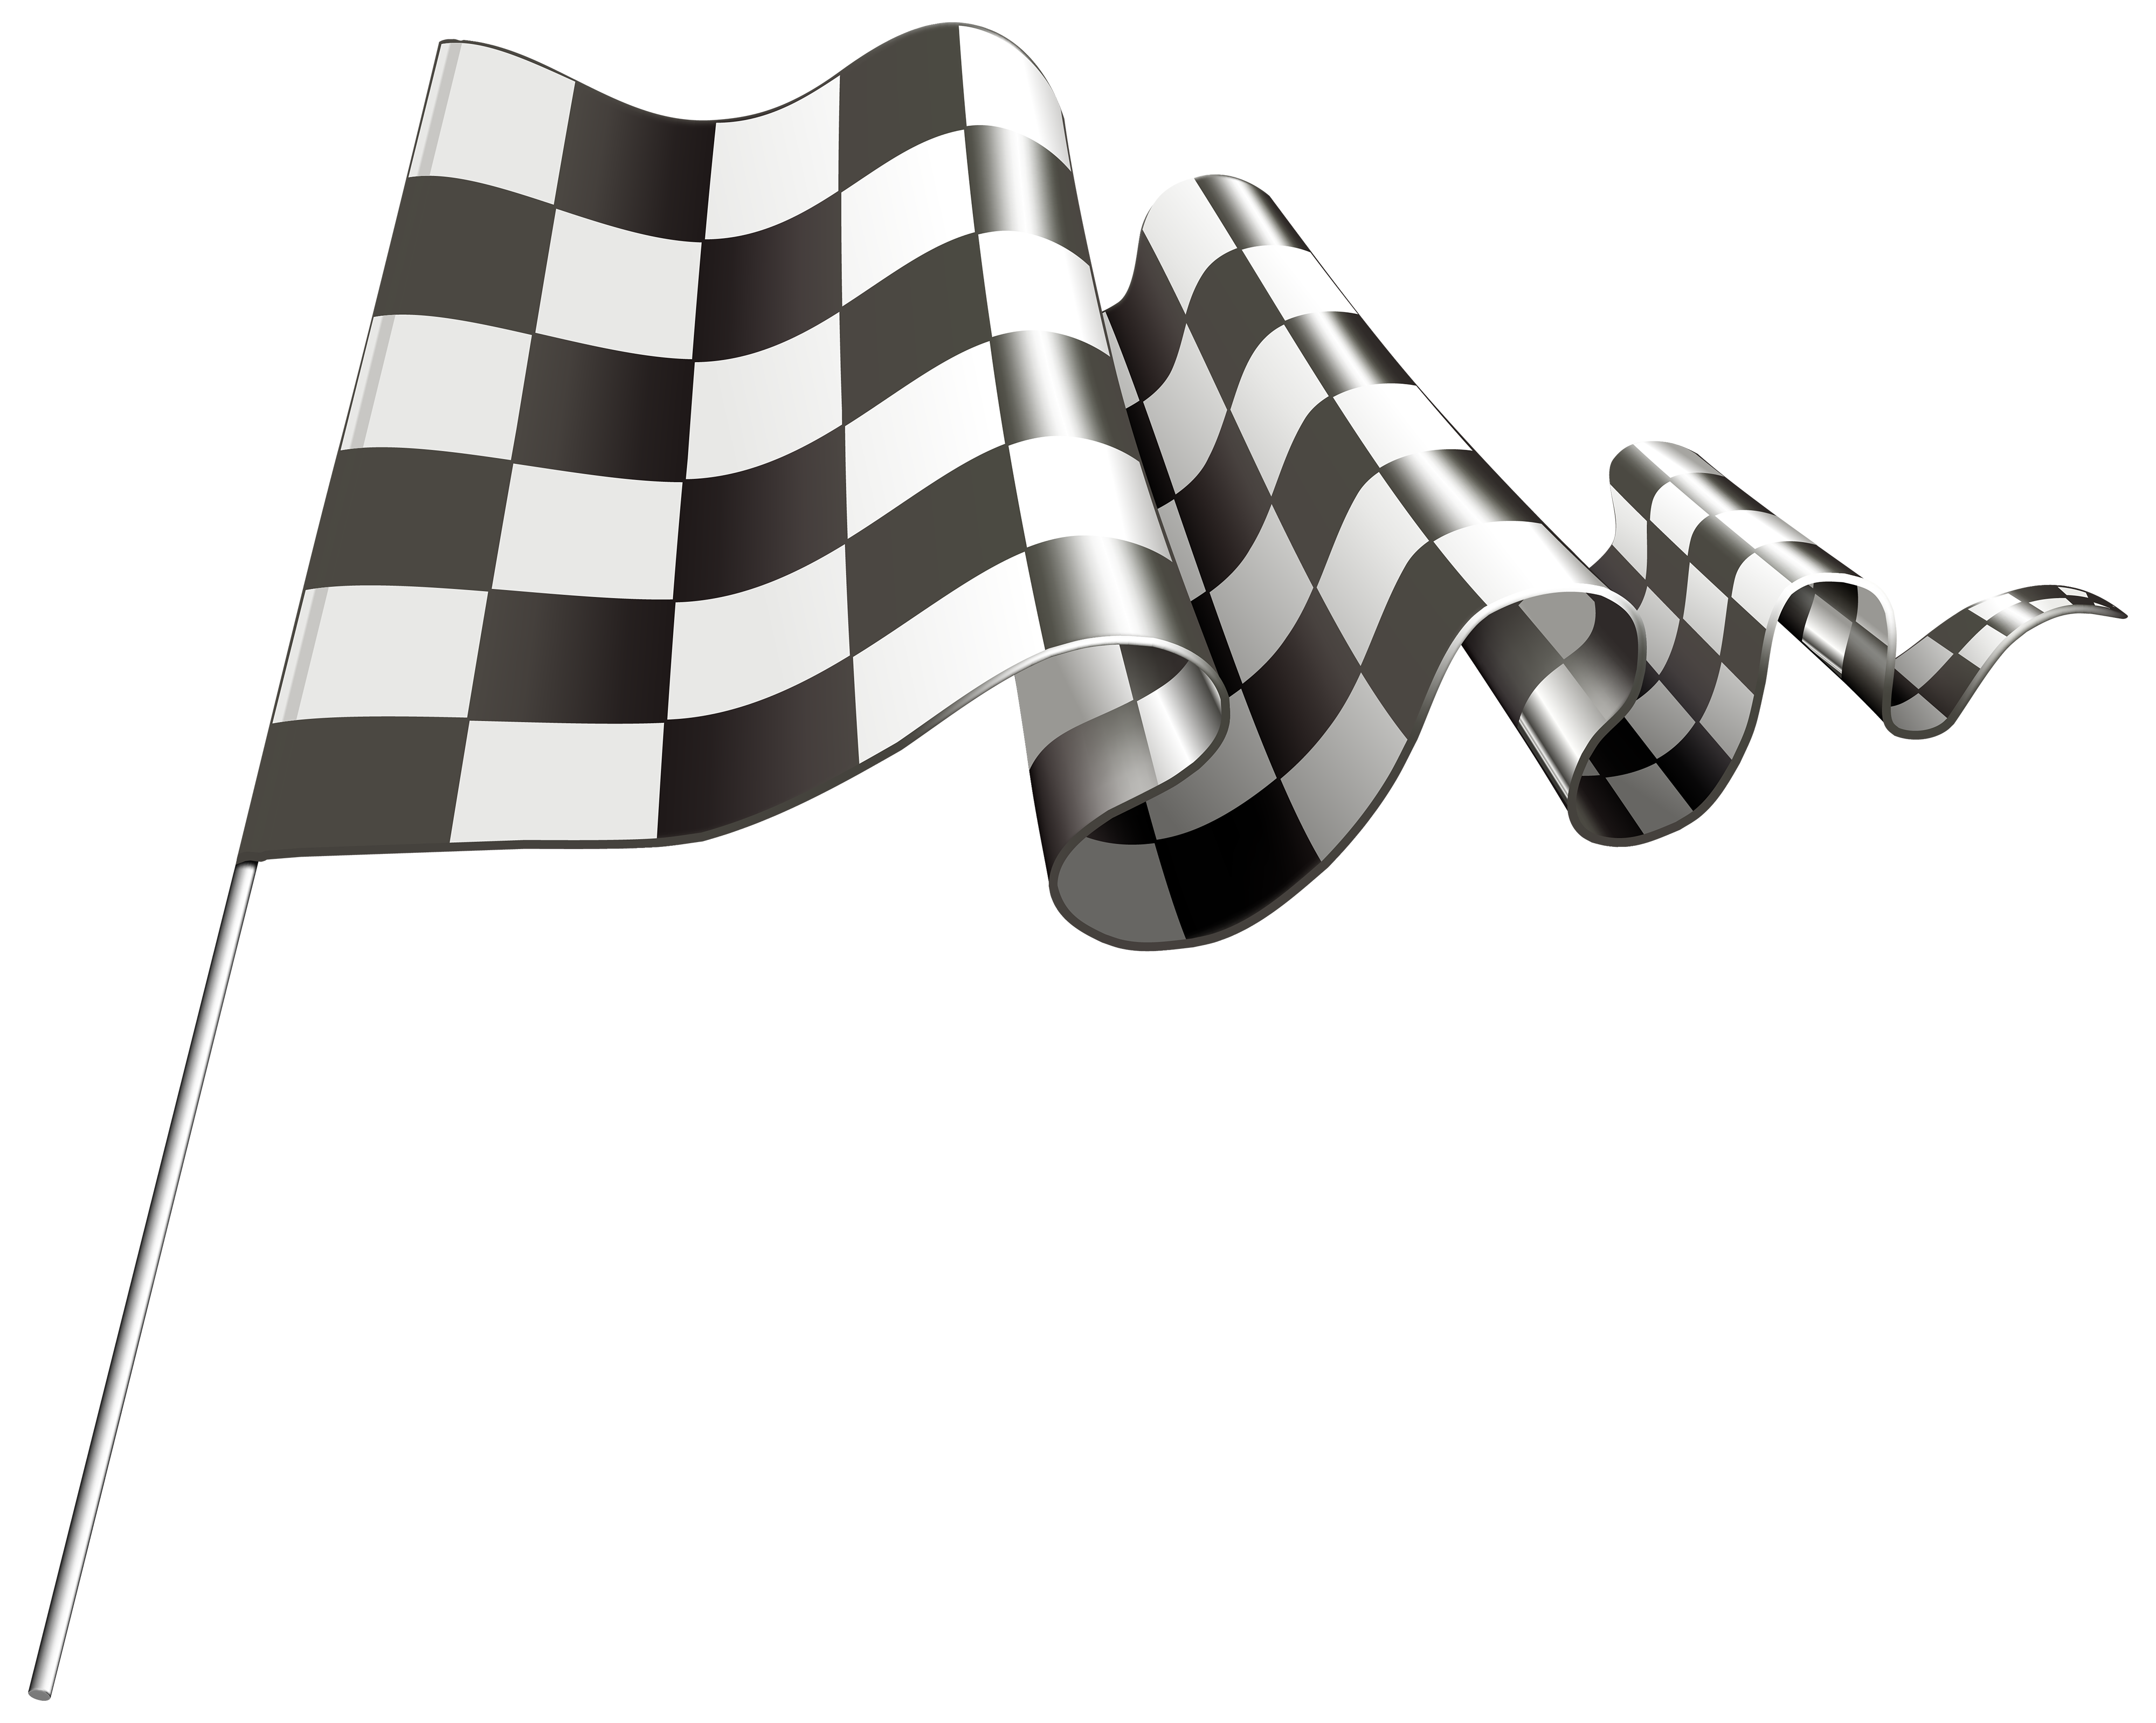 Clipart cars flag. Checkered png best web